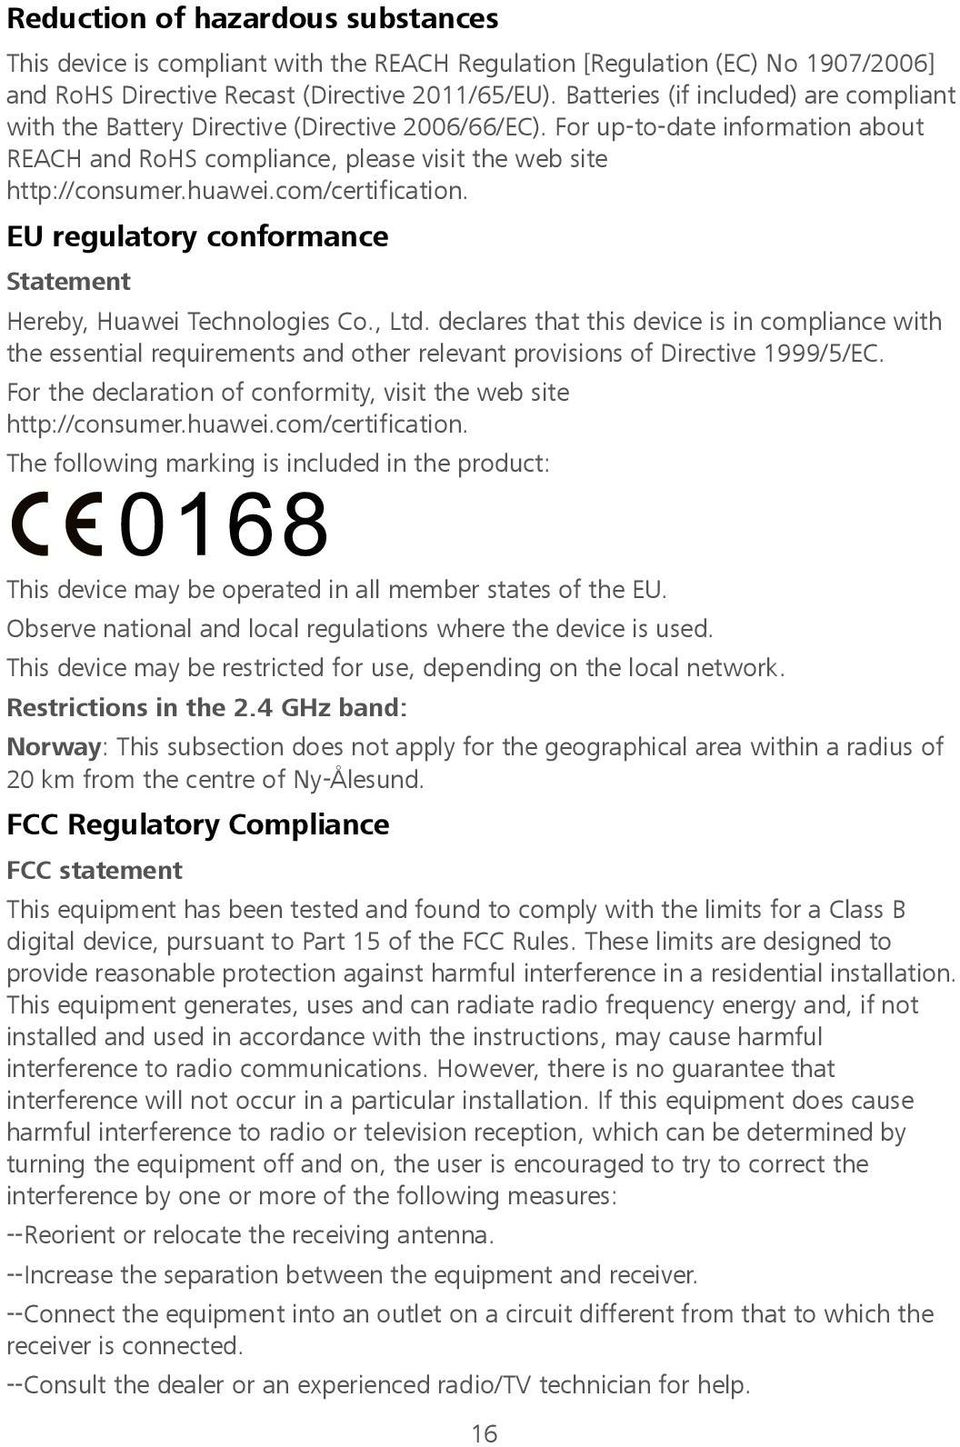 com/certification. EU regulatory conformance Statement Hereby, Huawei Technologies Co., Ltd.